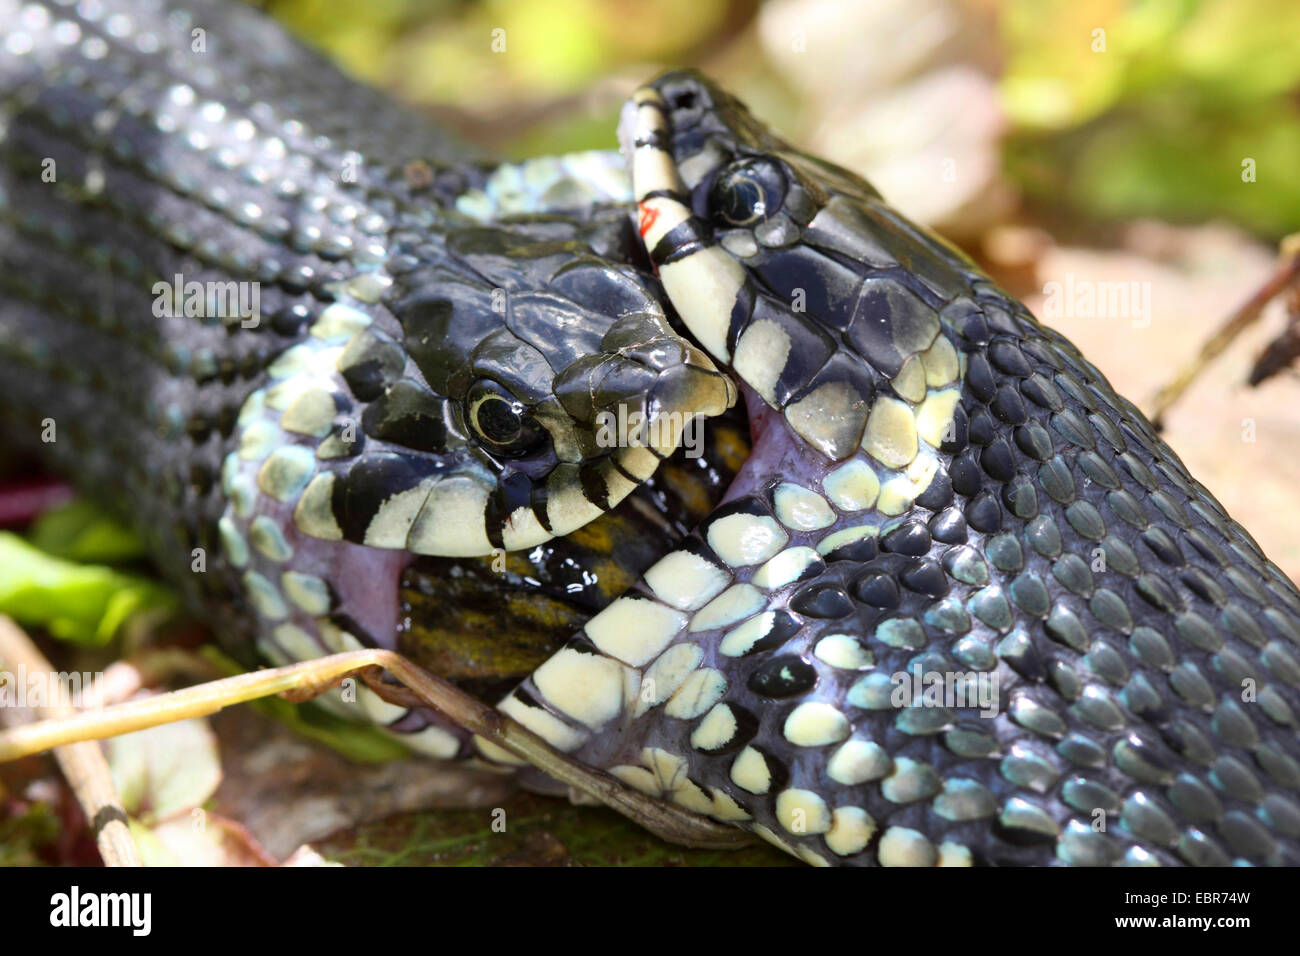 grass snake (Natrix natrix), series picture 17, two snakes fighting for a frog, Germany, Mecklenburg-Western Pomerania Stock Photo